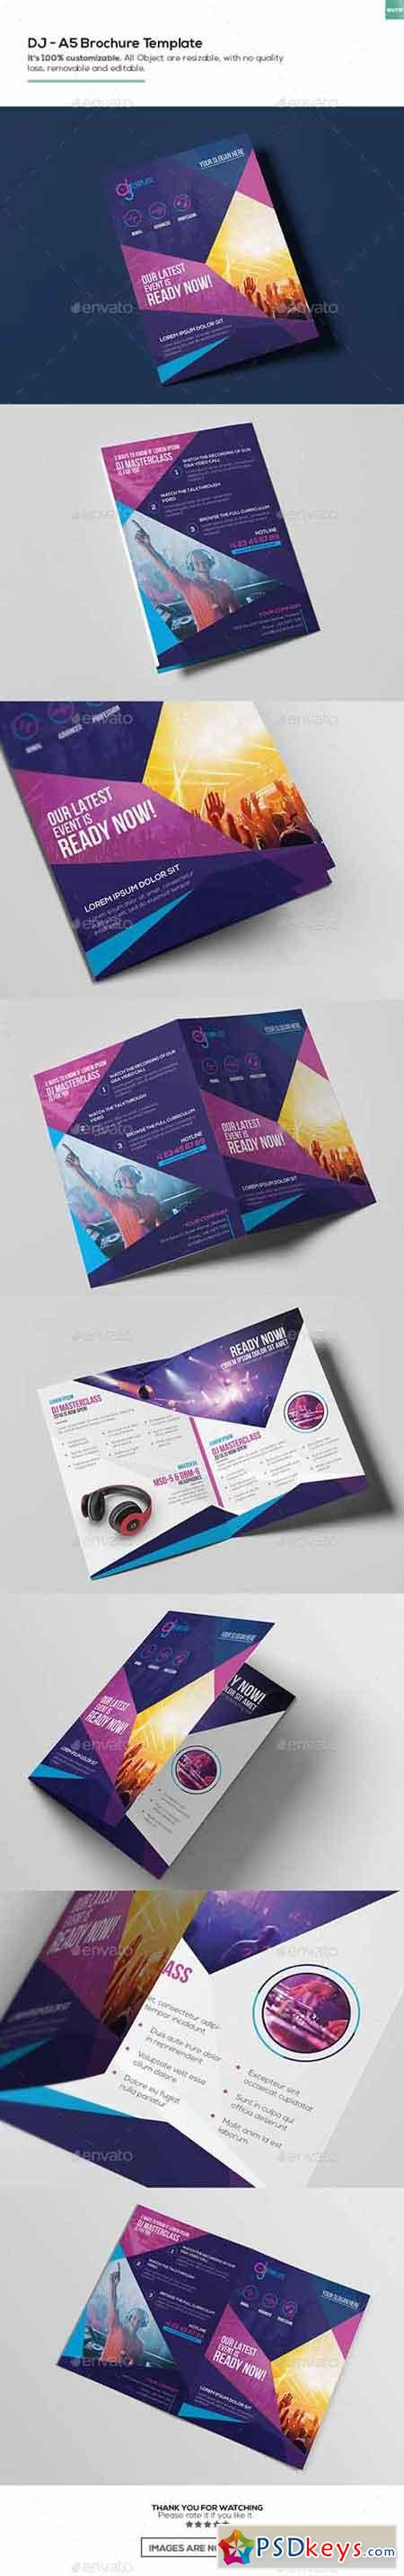 DJ A Brochure Template Free Download Photoshop Vector - A5 brochure template